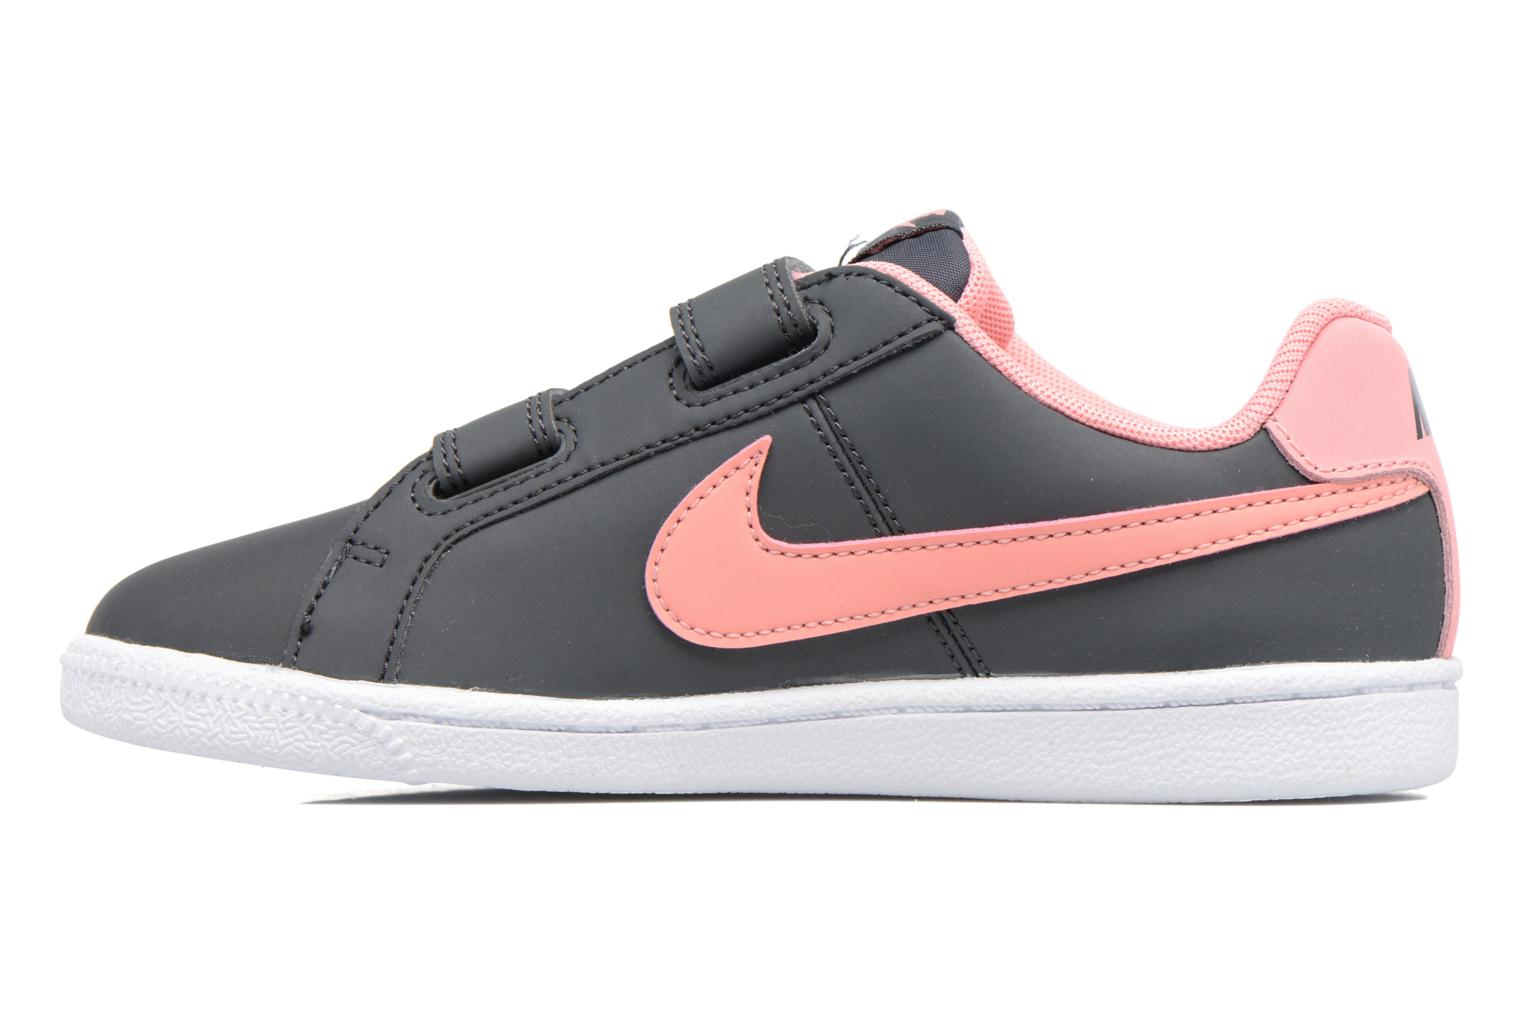 Nike Court Royale (Psv) Anthracite/Bright Melon-White